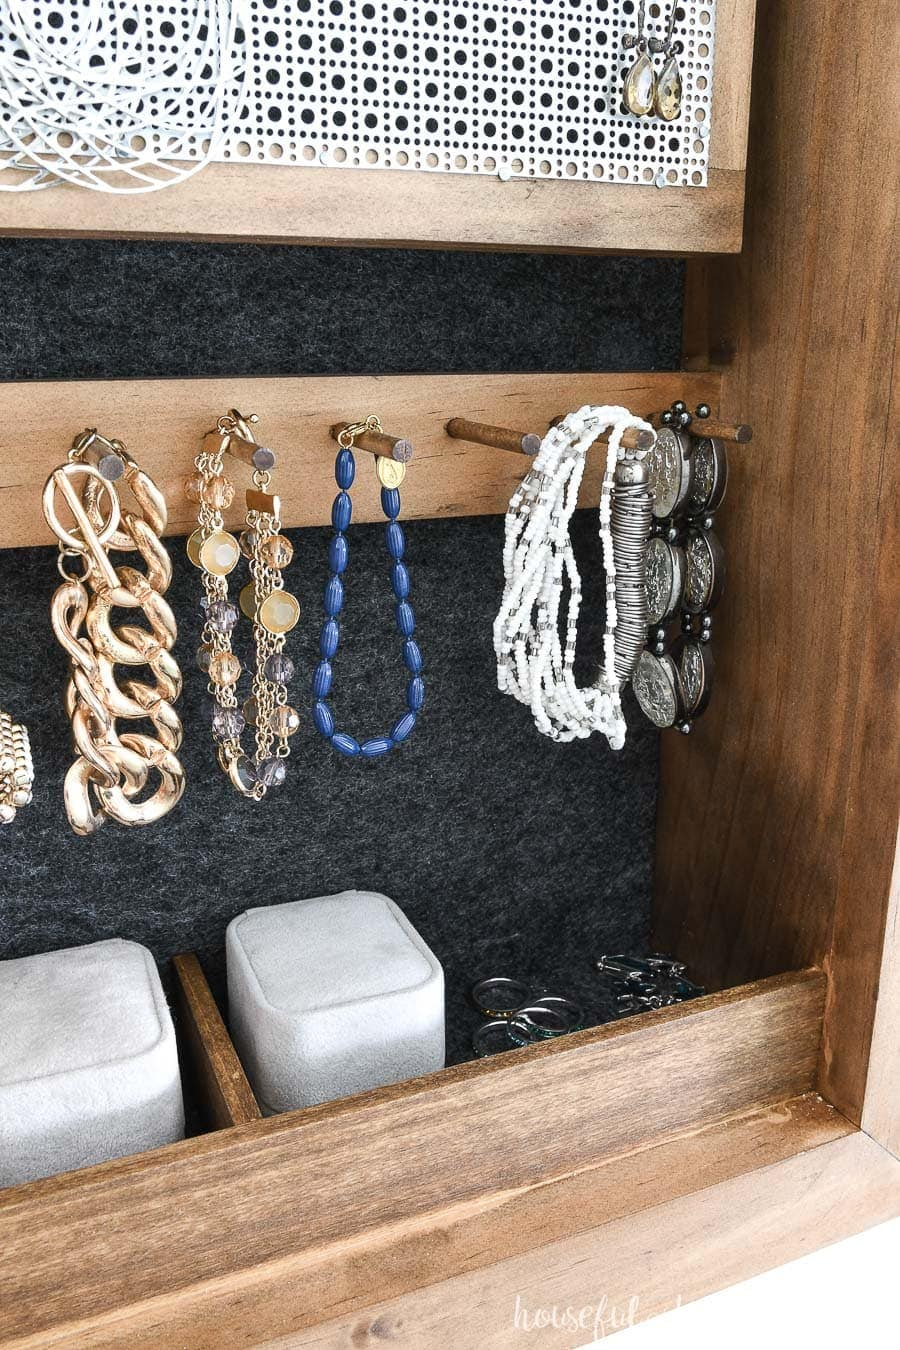 Close up view of bracelet hooks and ring compartments of the DIY wall jewelry organizer.